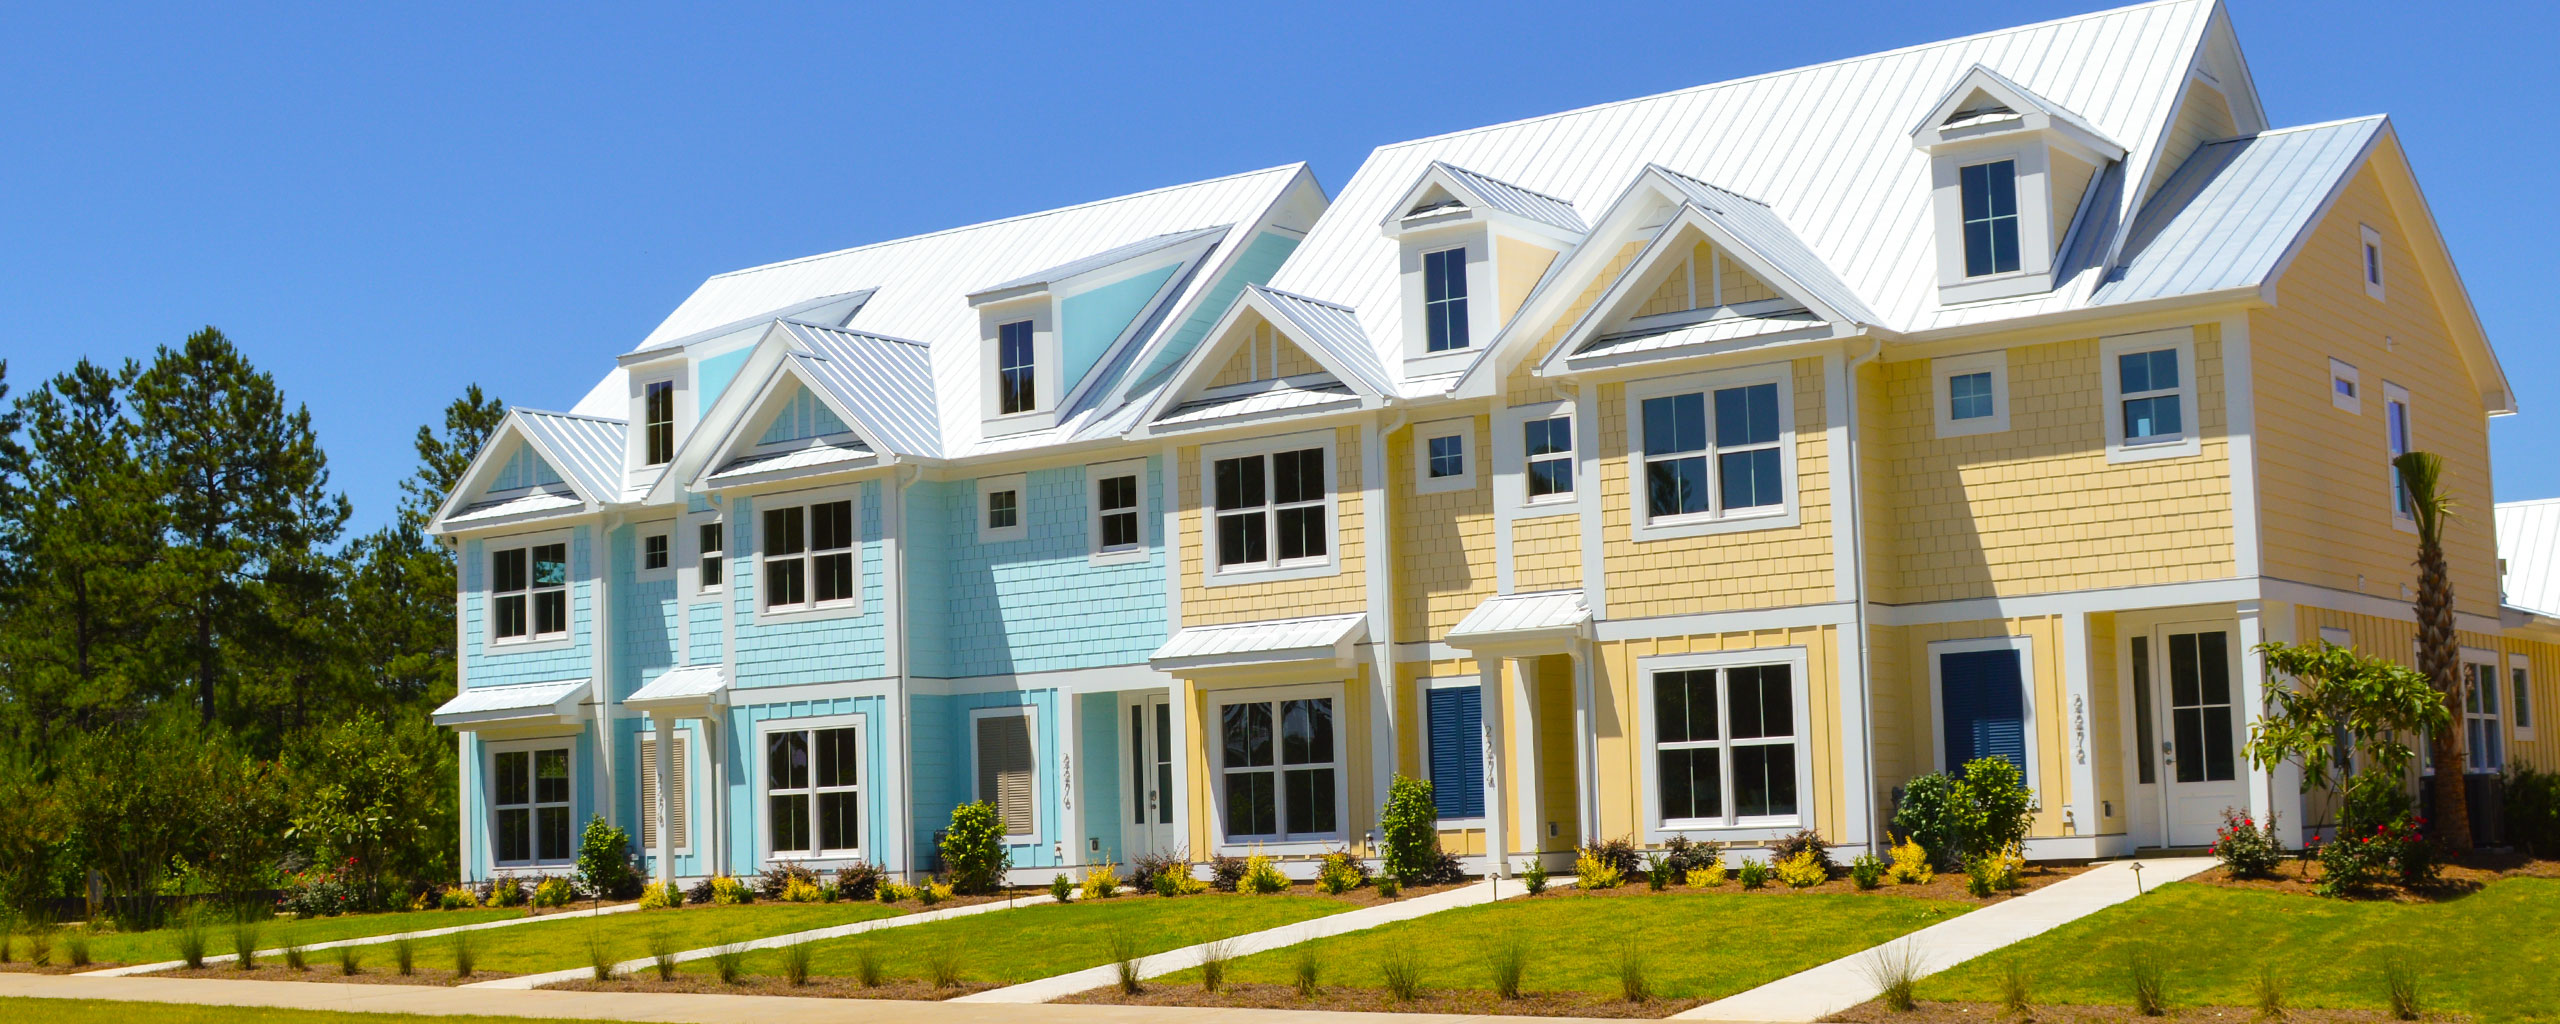 Town Homes in Tennyson Village